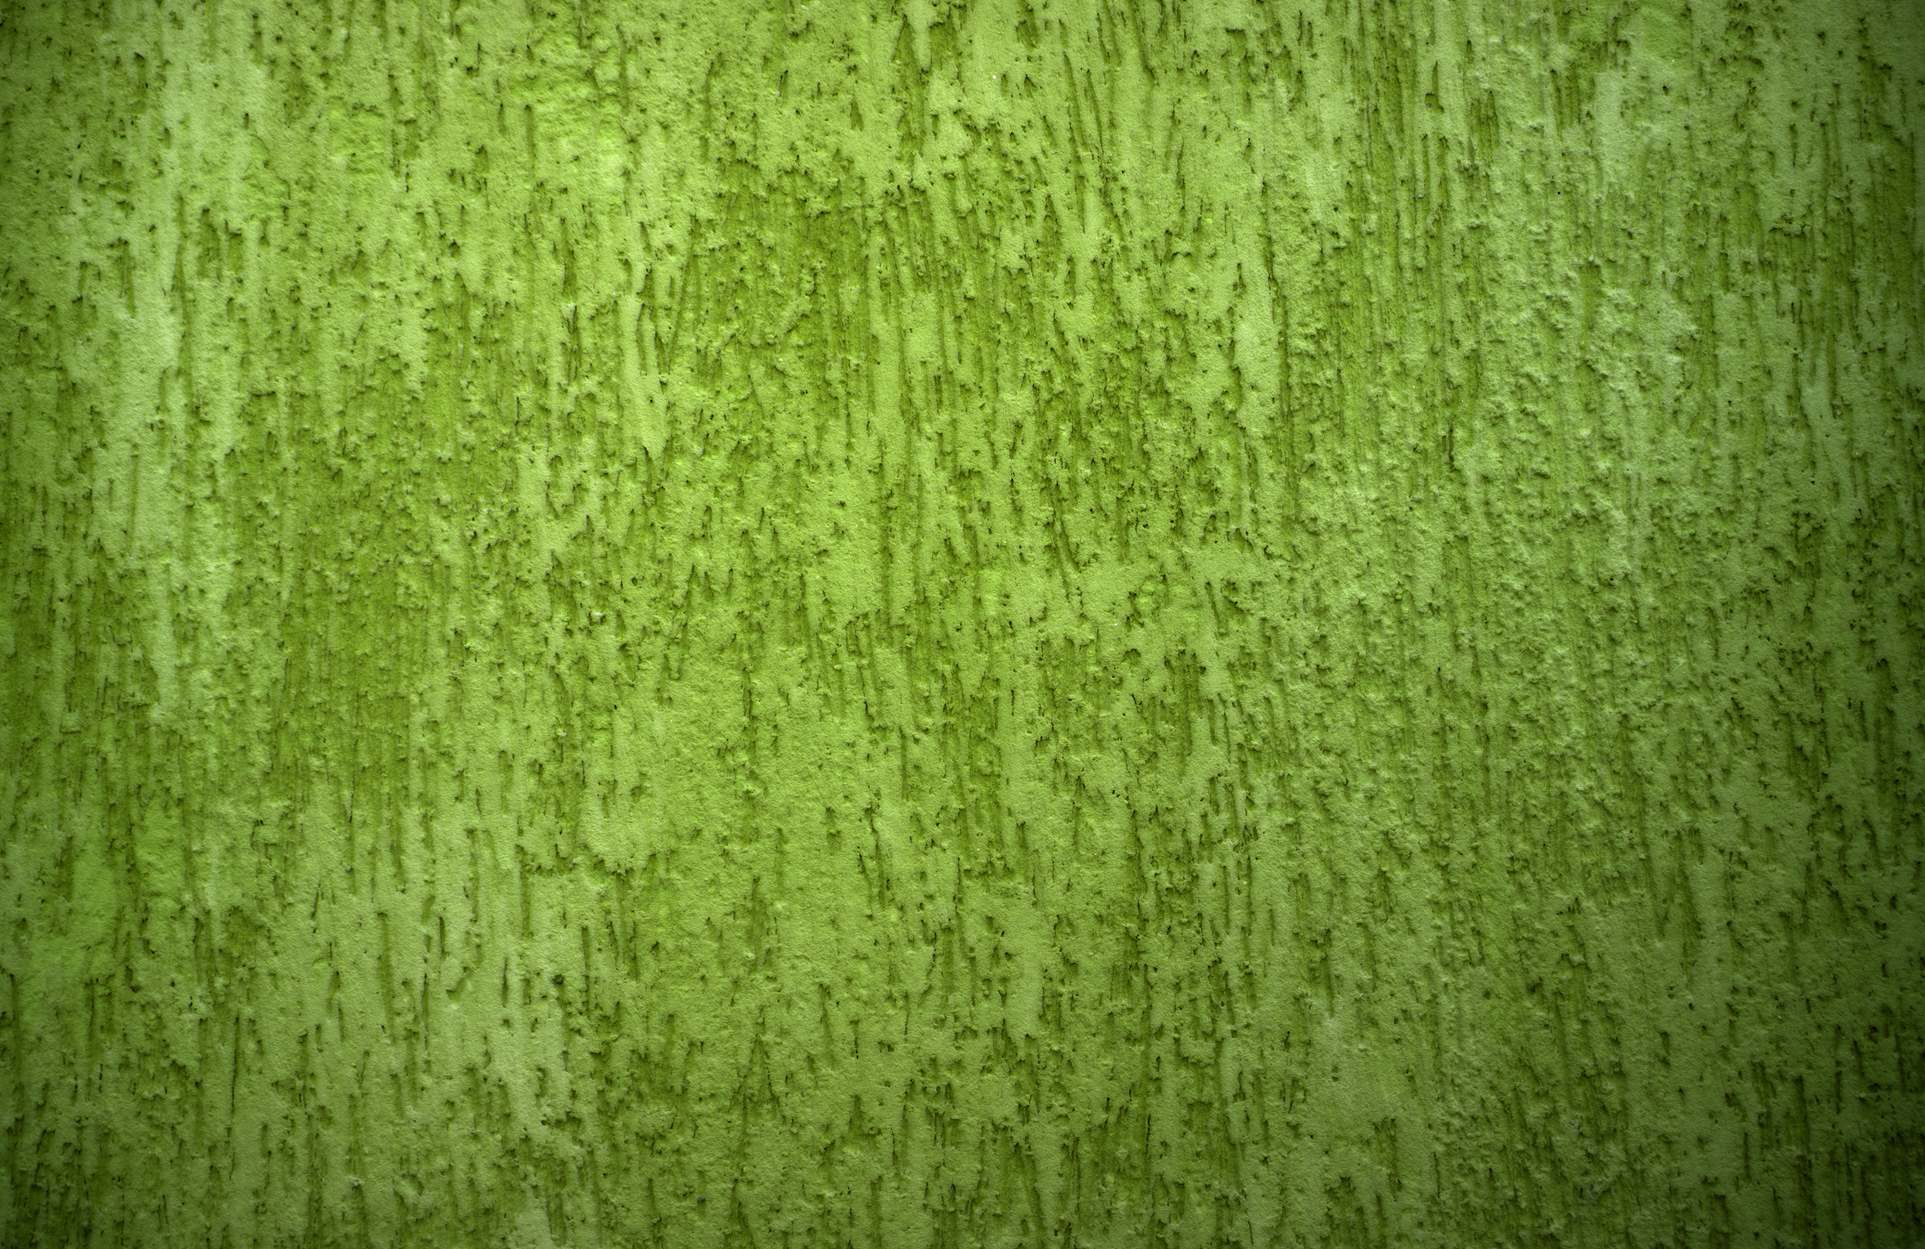 Green textured wall background photohdx for Green wallpaper for walls